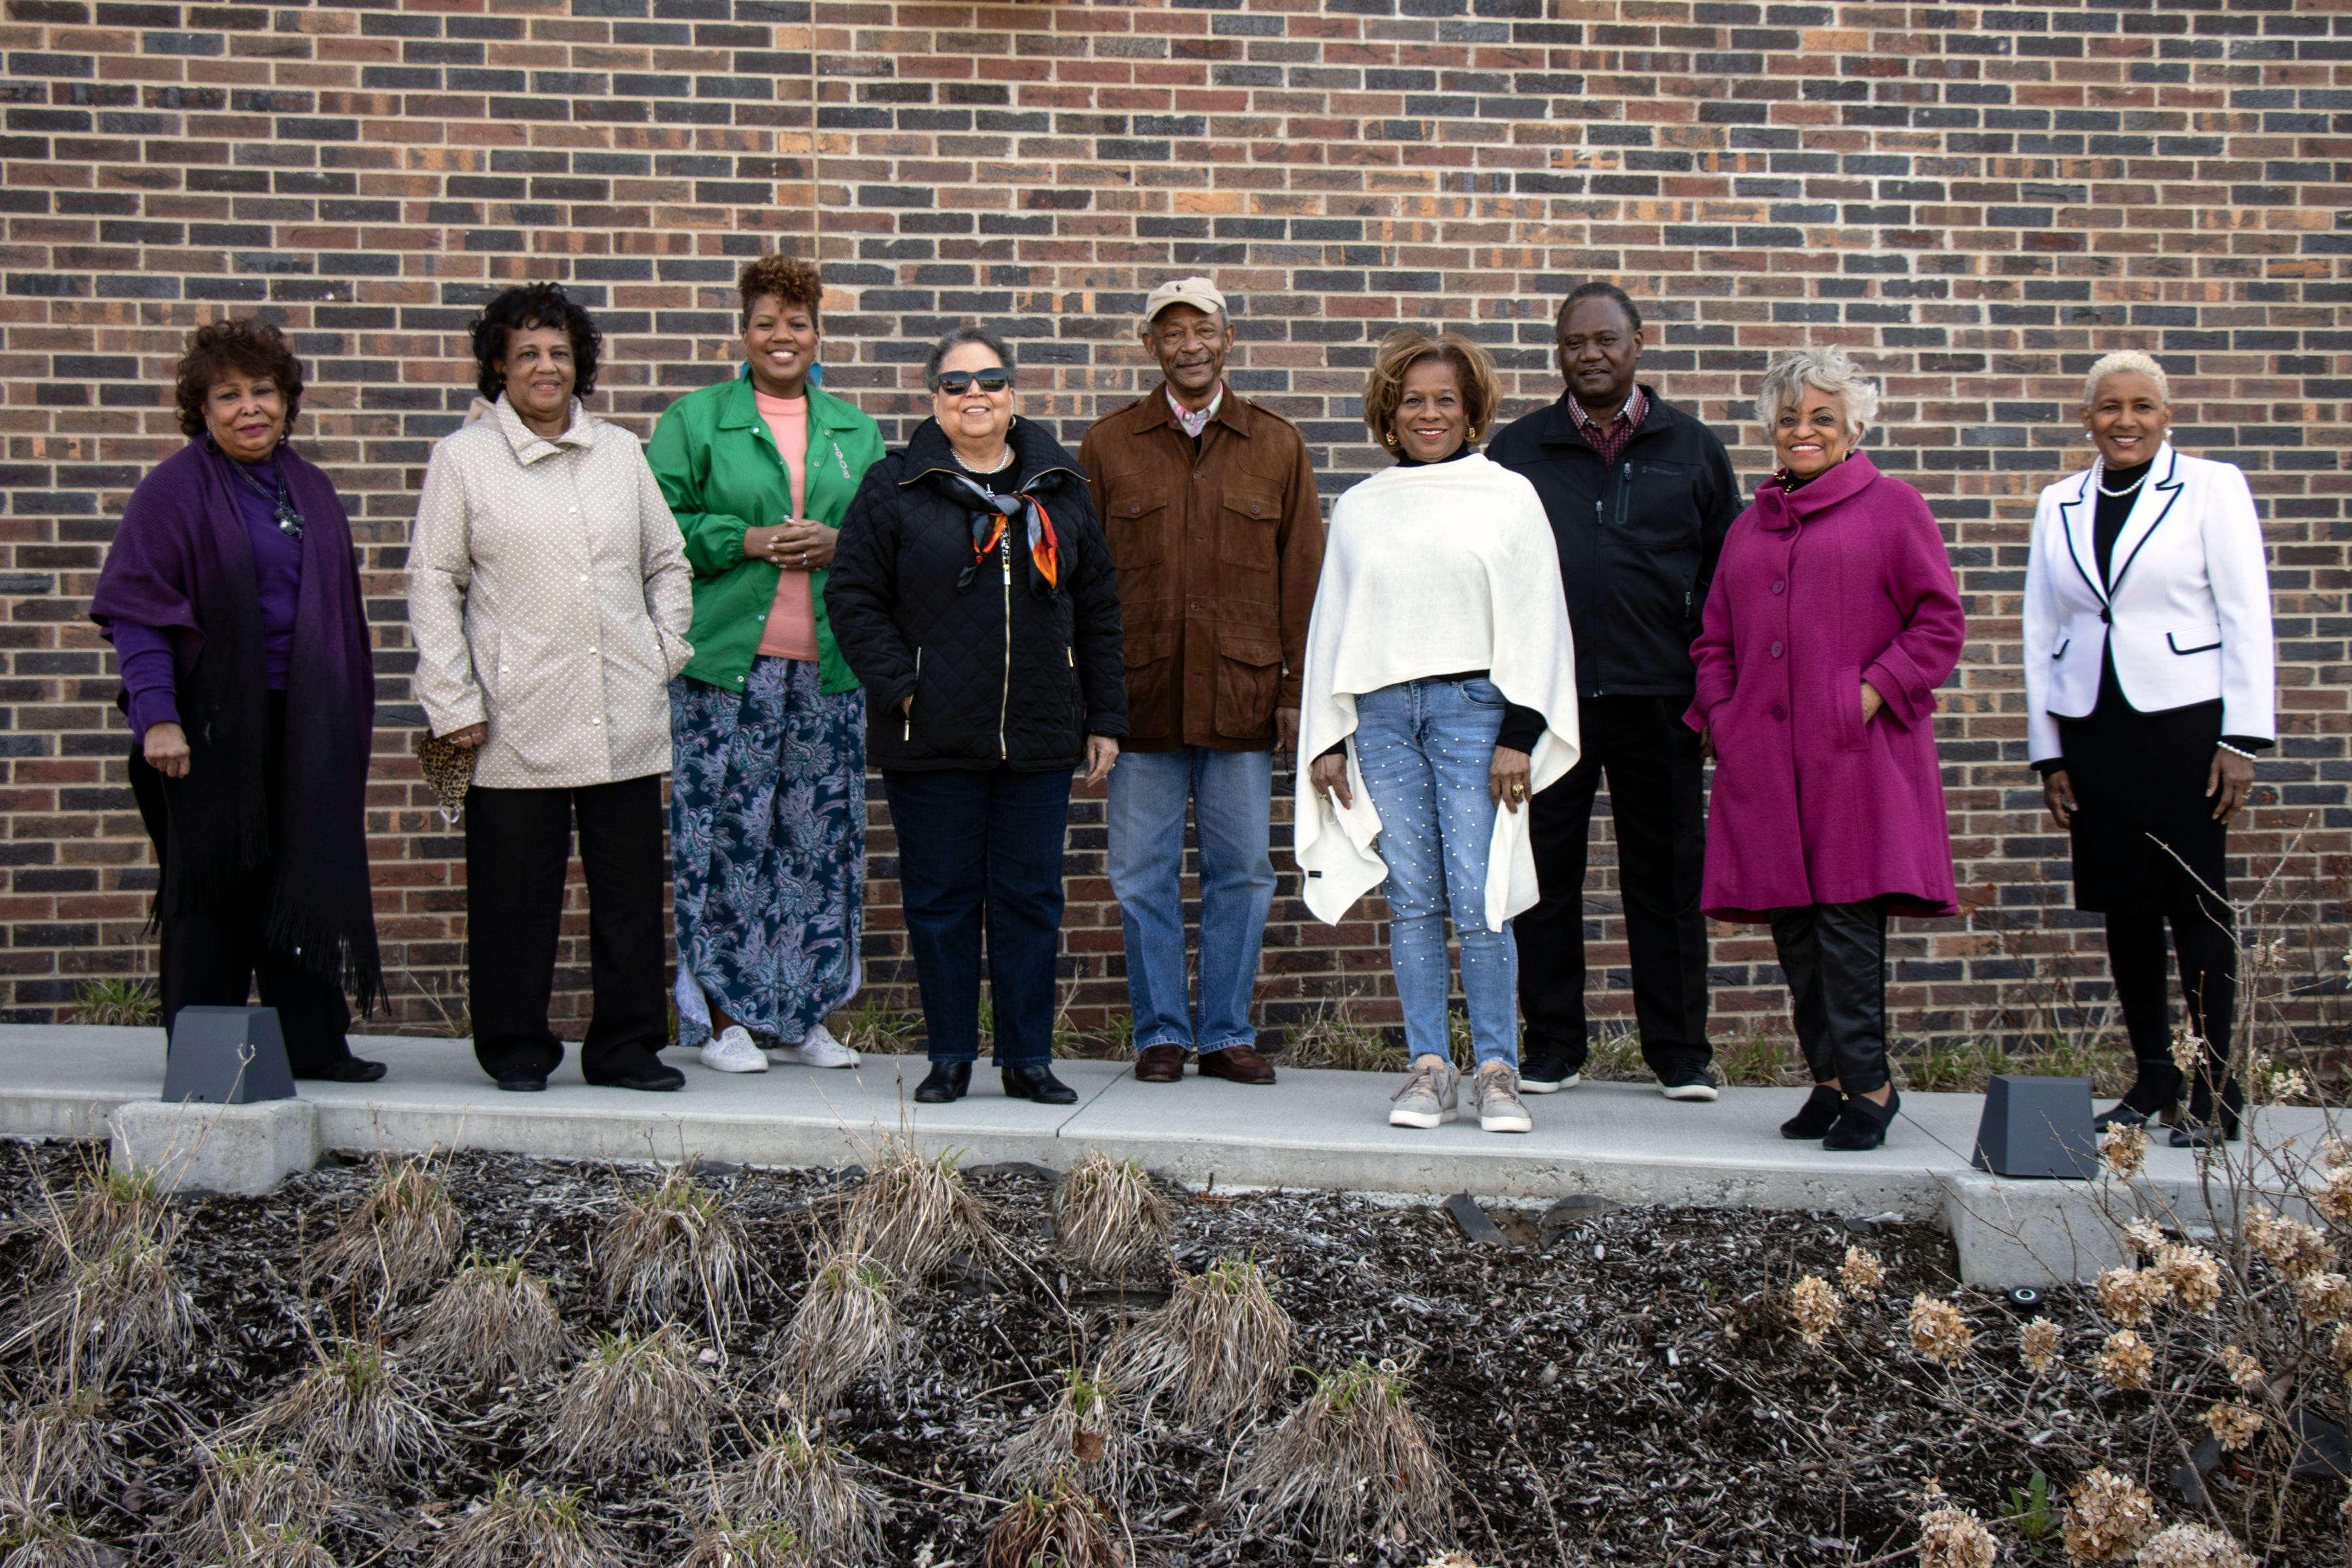 Members of a group of retired Black JCPS principals and administrators say they are concerned about potential changes to the district's student assignment plan. March 19, 2021